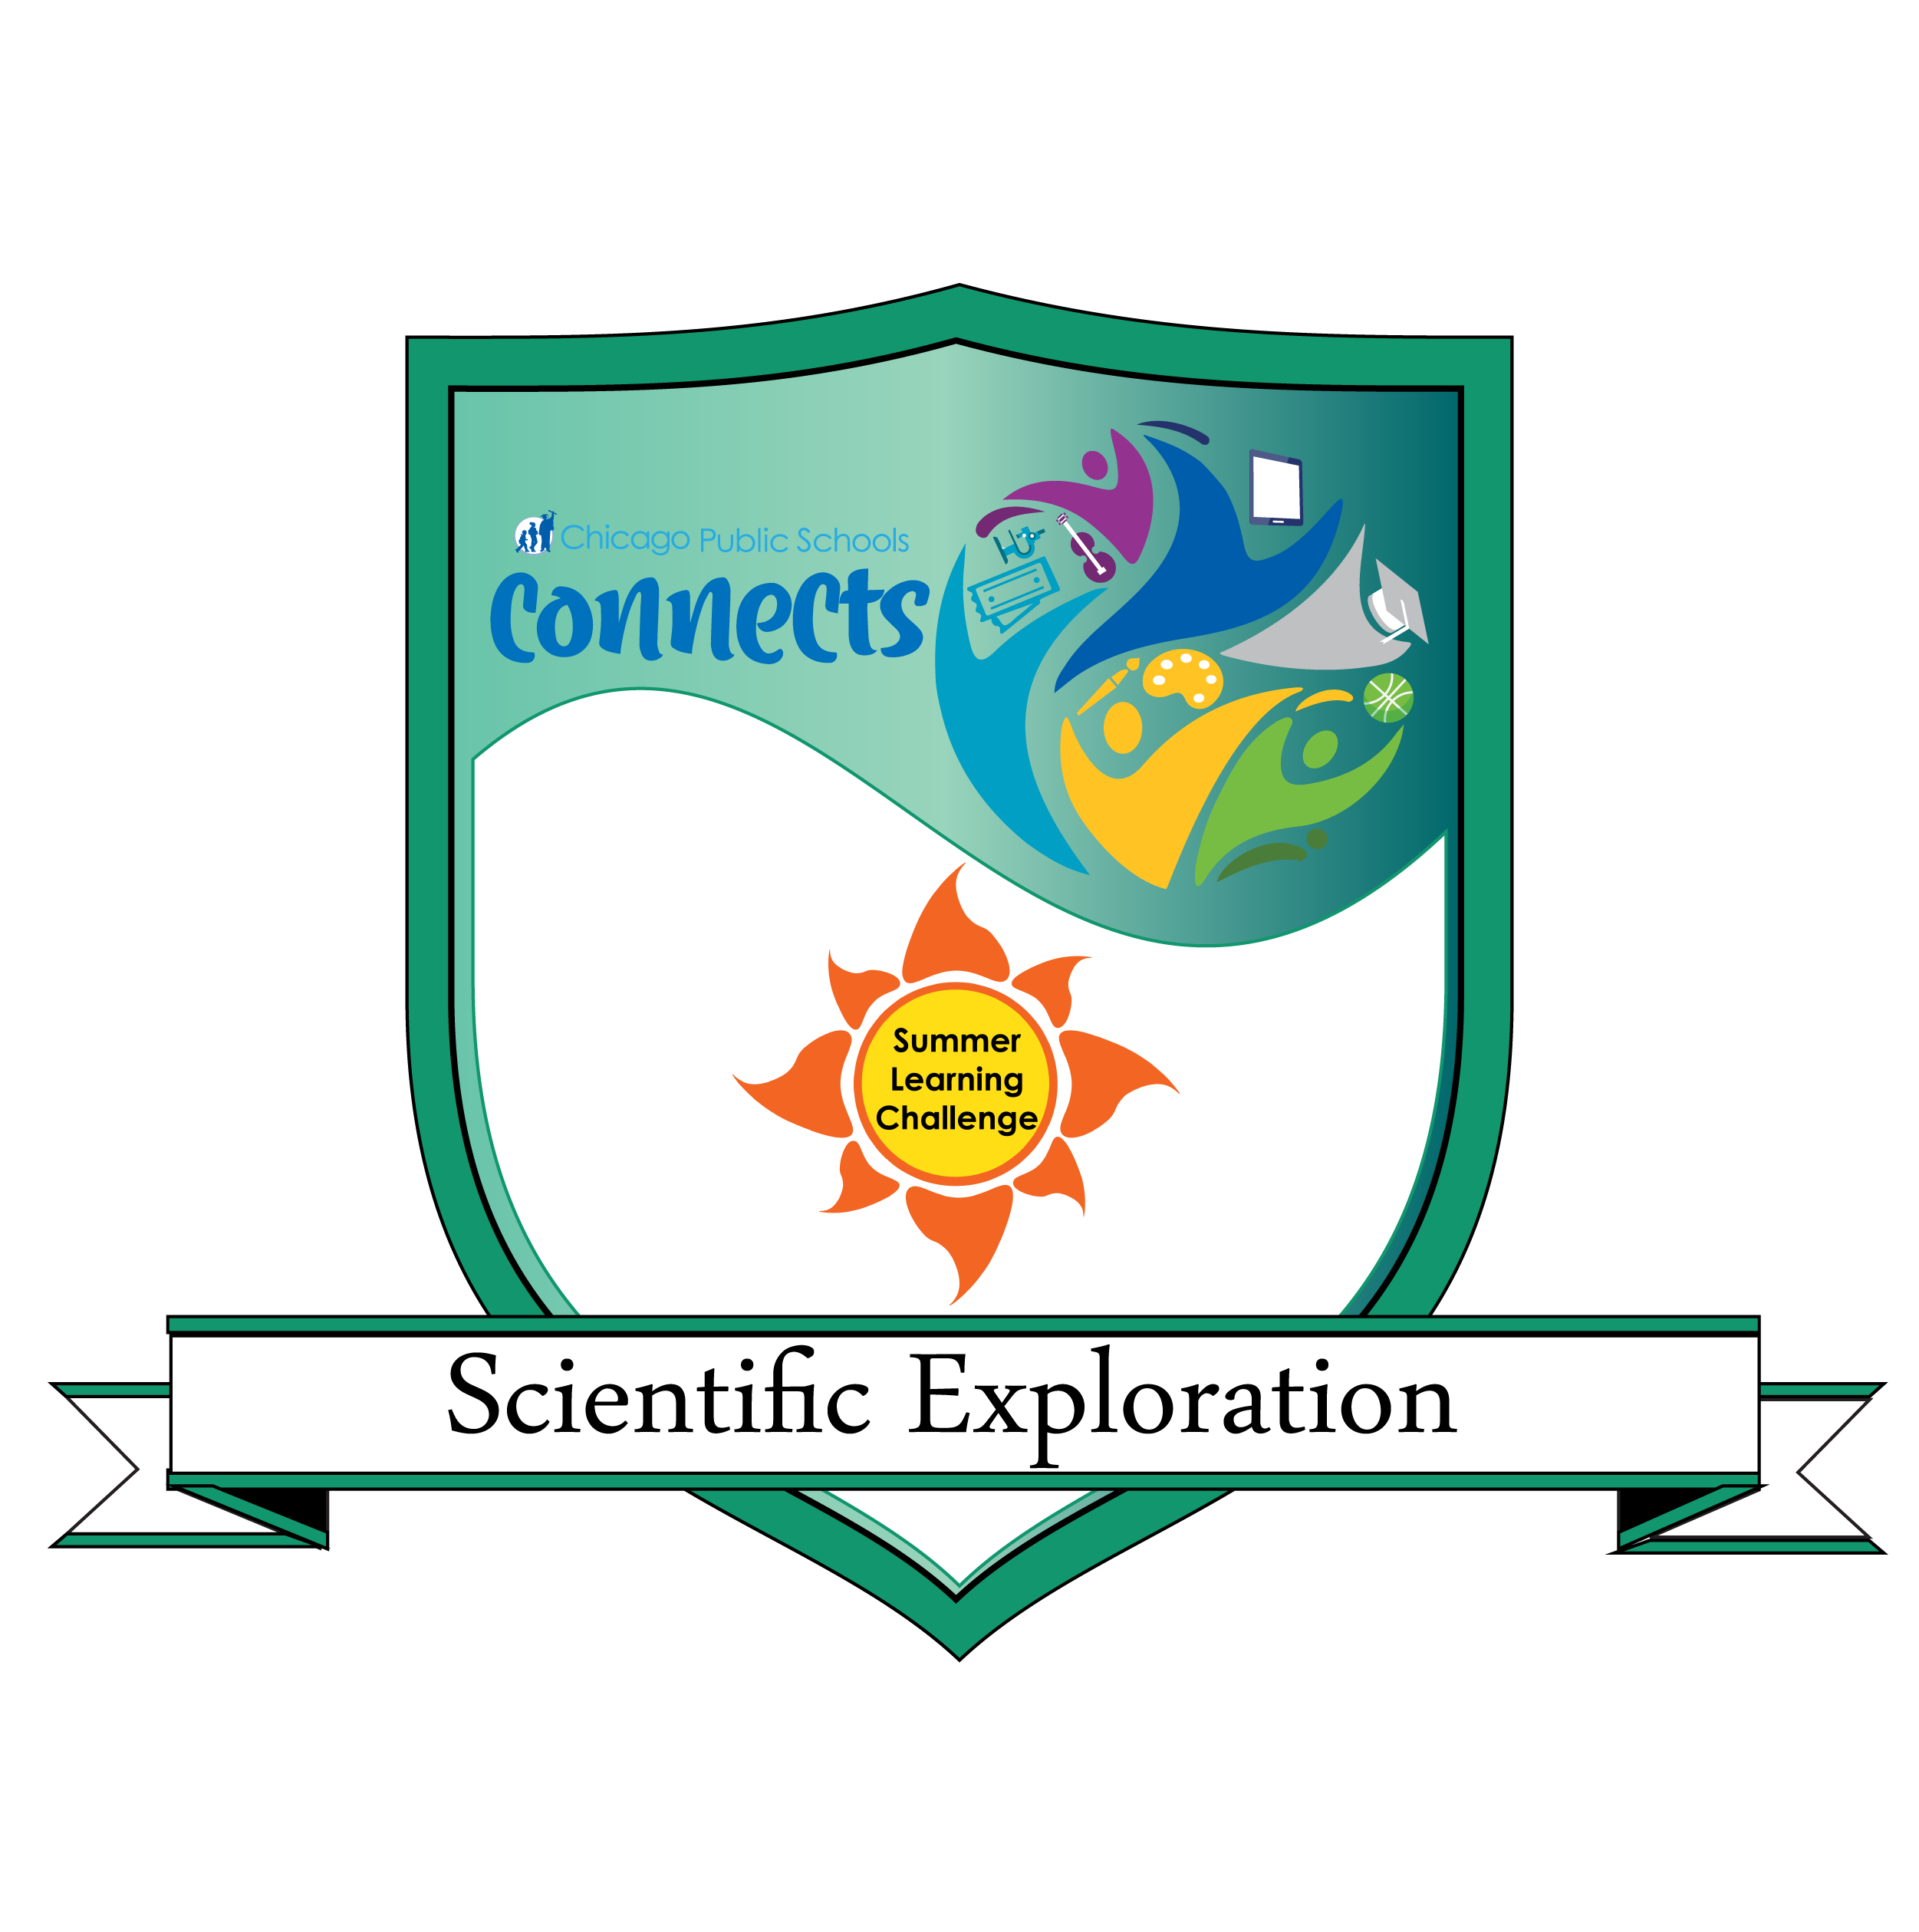 CPS Connects Summer 2016: Scientific Exploration